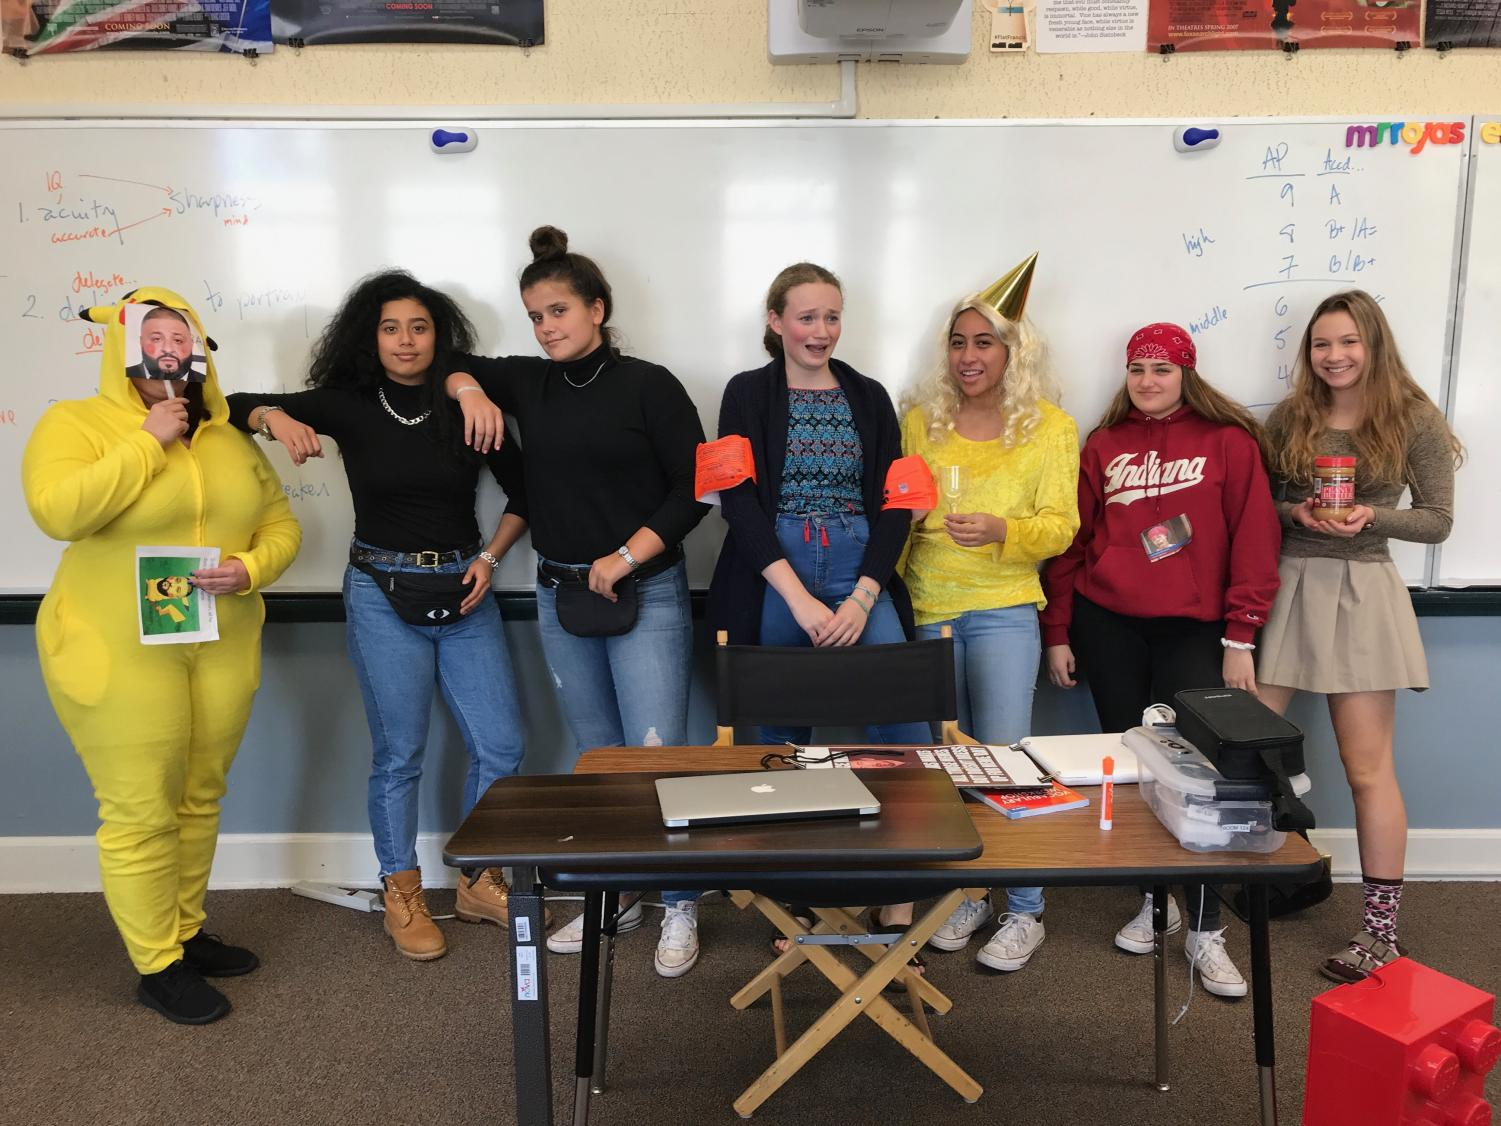 Teachers and students dressed up for last year's theme day